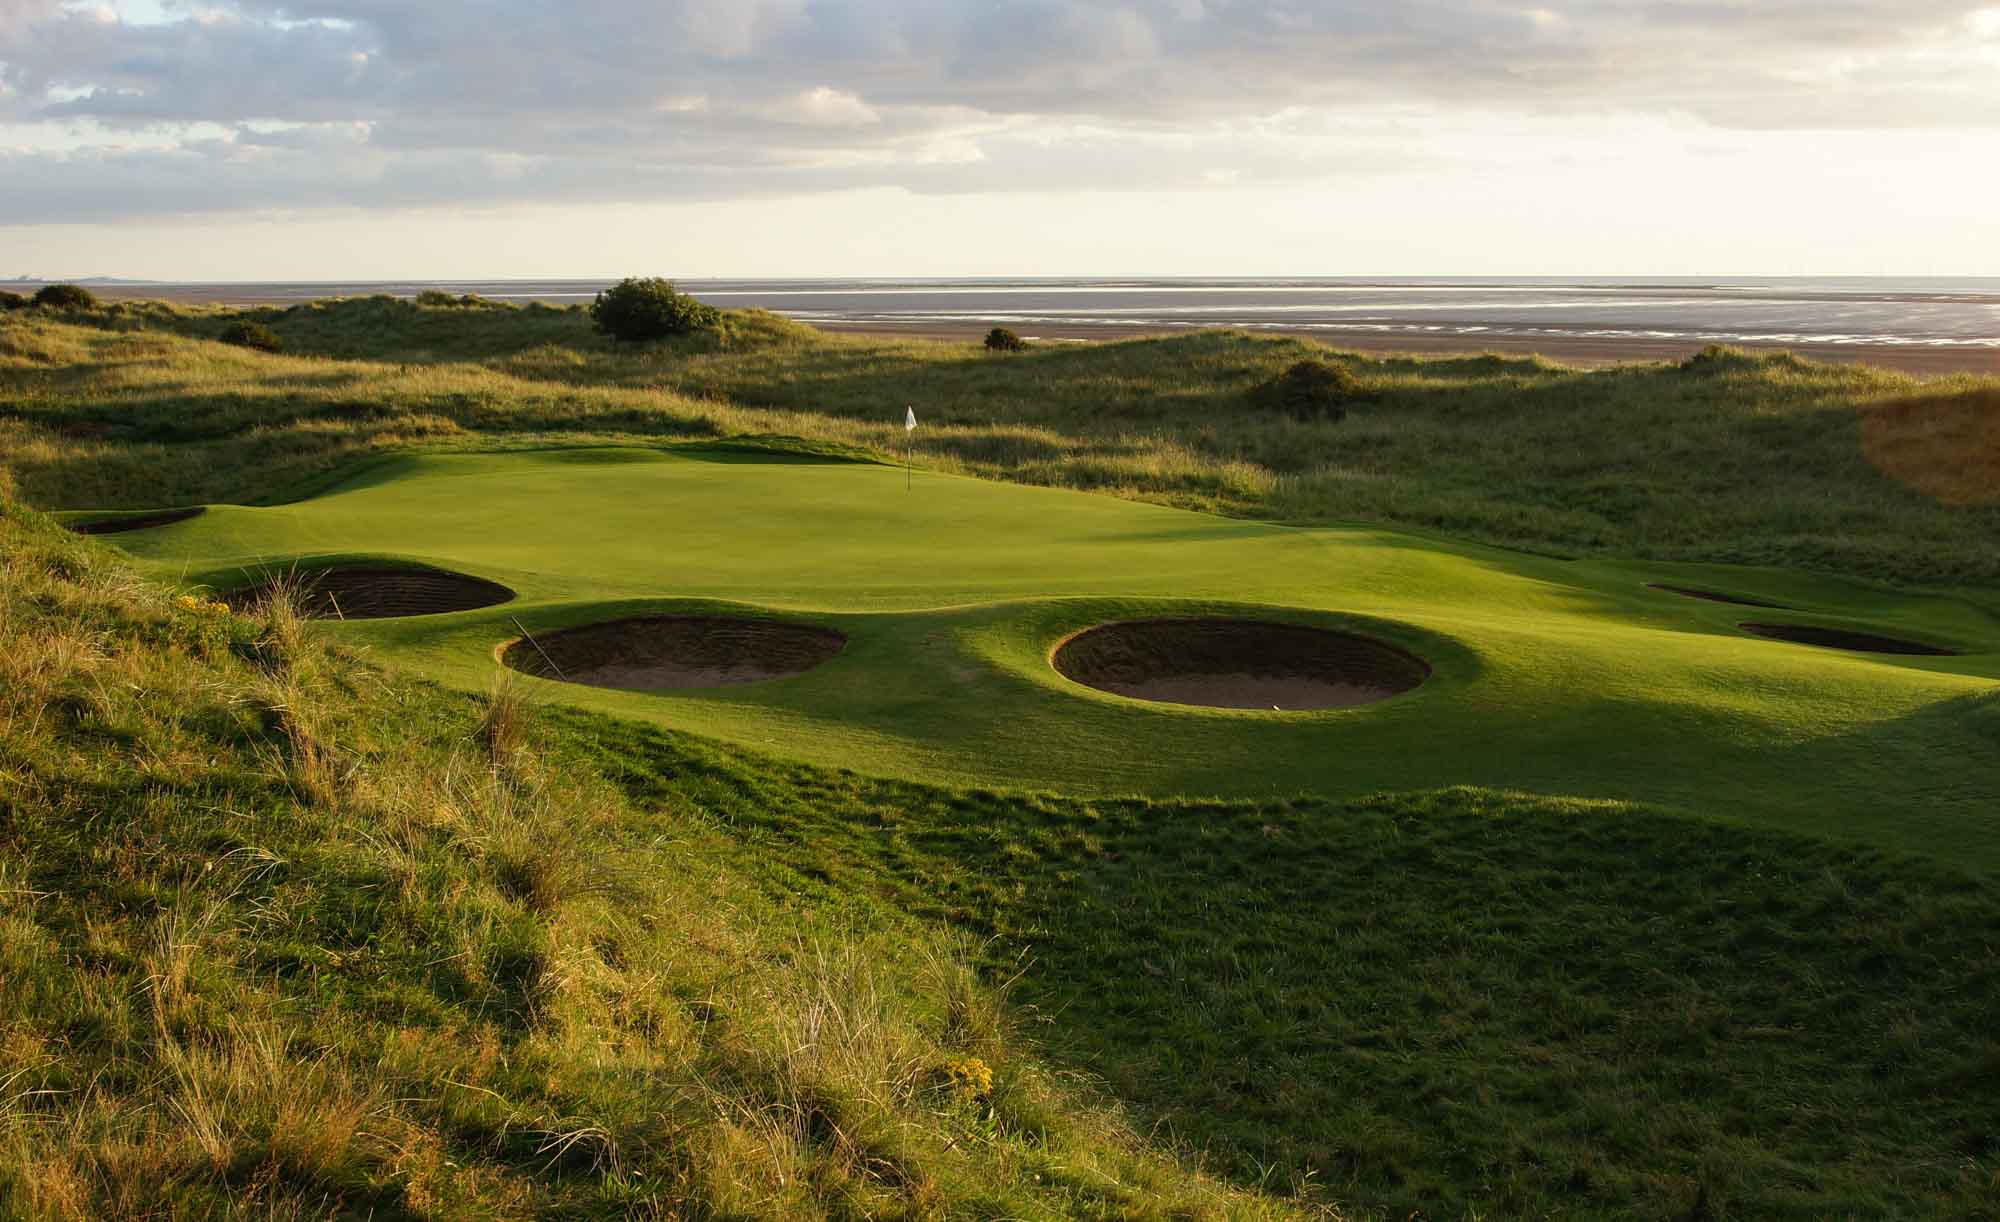 Pot bunkers surround the green at Silloth Golf Club.